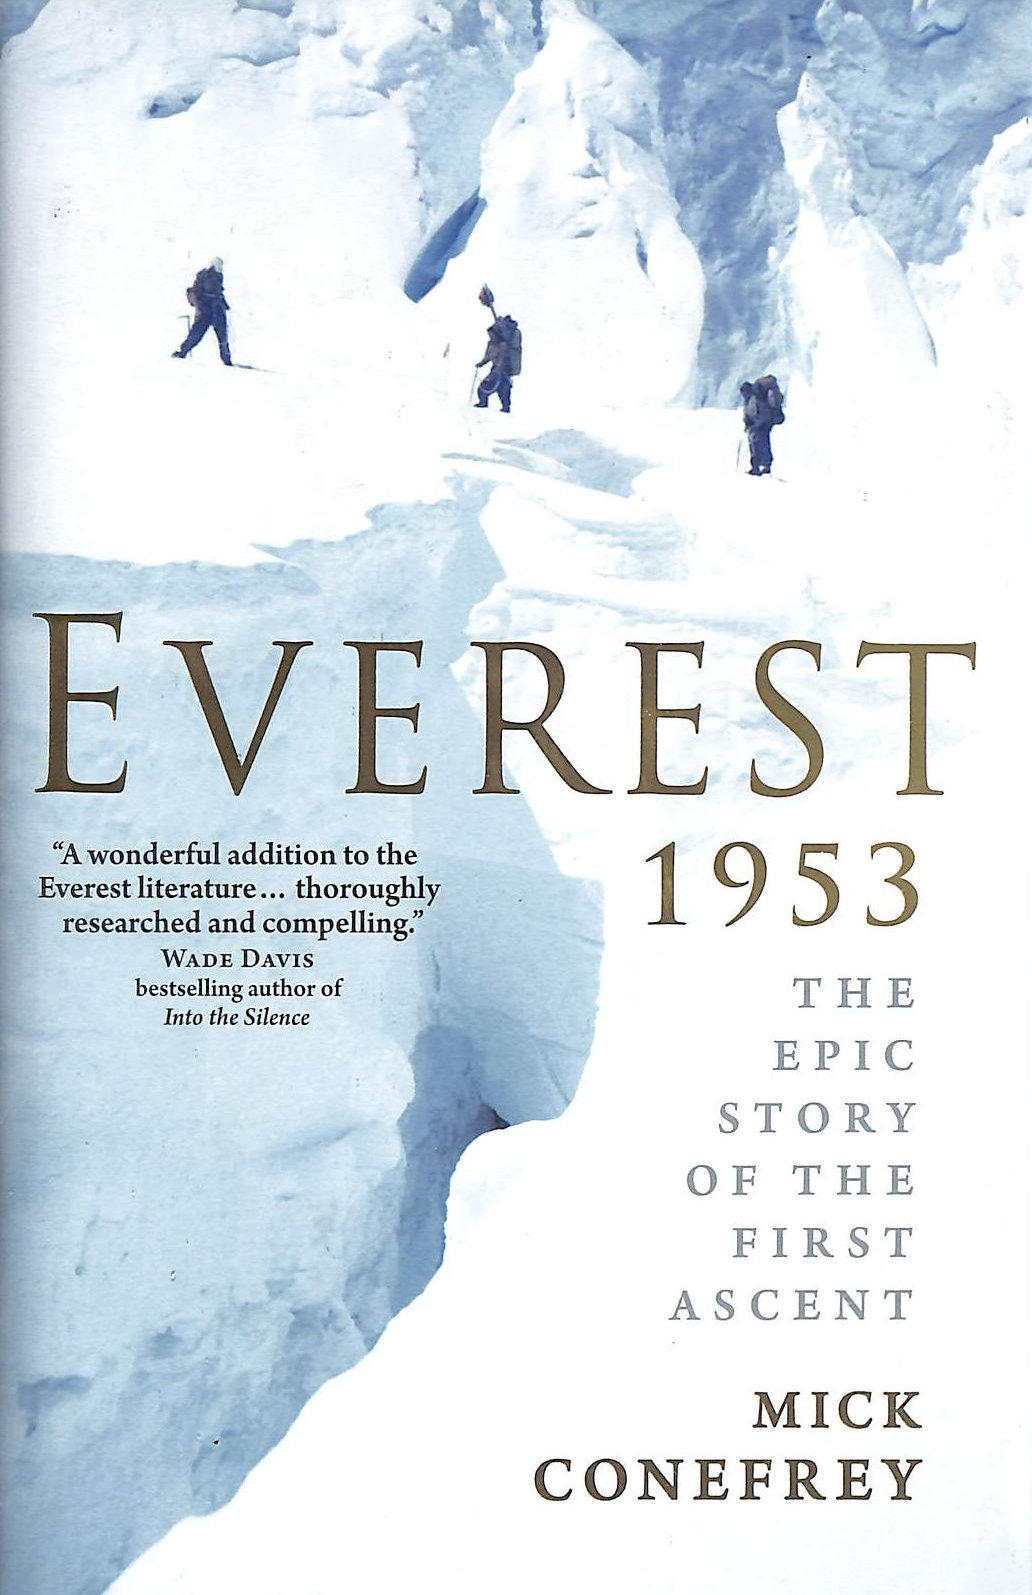 Image for Everest 1953: The Epic Story of the First Ascent